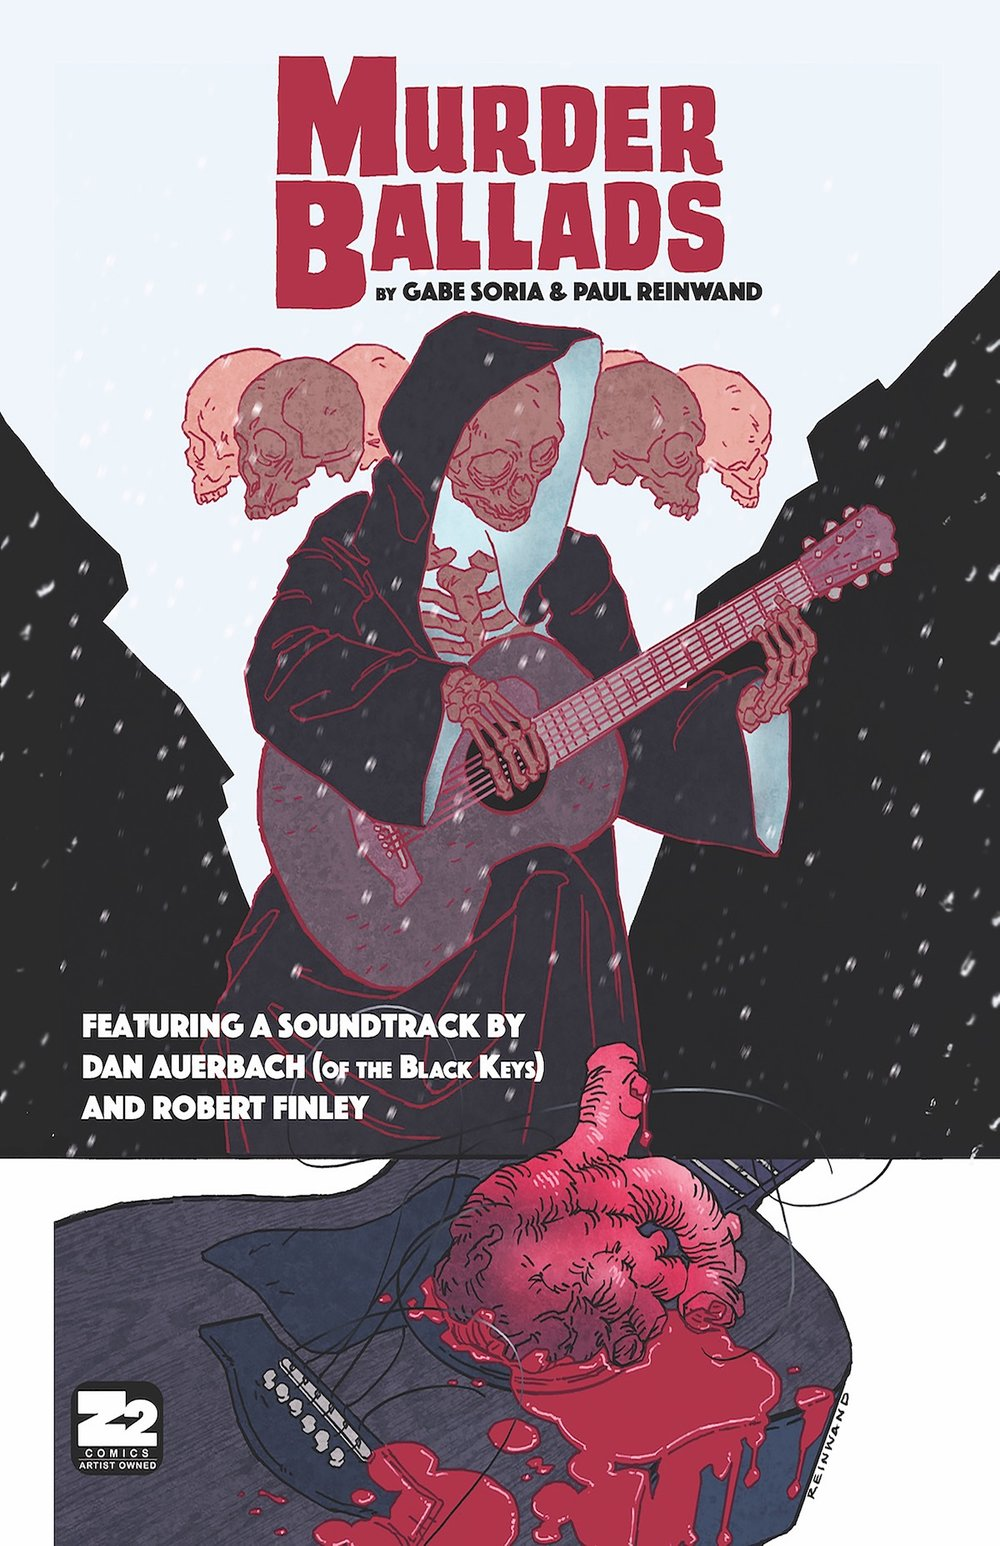 Murder Ballads: By Gabe Soria, Paul Reinwand, Chris Hunt, Dan Auerbach and Robert Finley  Murder Ballads is a truly unique package, A Graphic Novel with an an accompanying soundtrack by Dan Auerbach and Robert Finley. It deftly weaves the music into an narrative that is a meditation on music, race, obsession, and how far someone will go to see their vision become real,  Music contributed by Dan Auerbach and Robert Finley.""